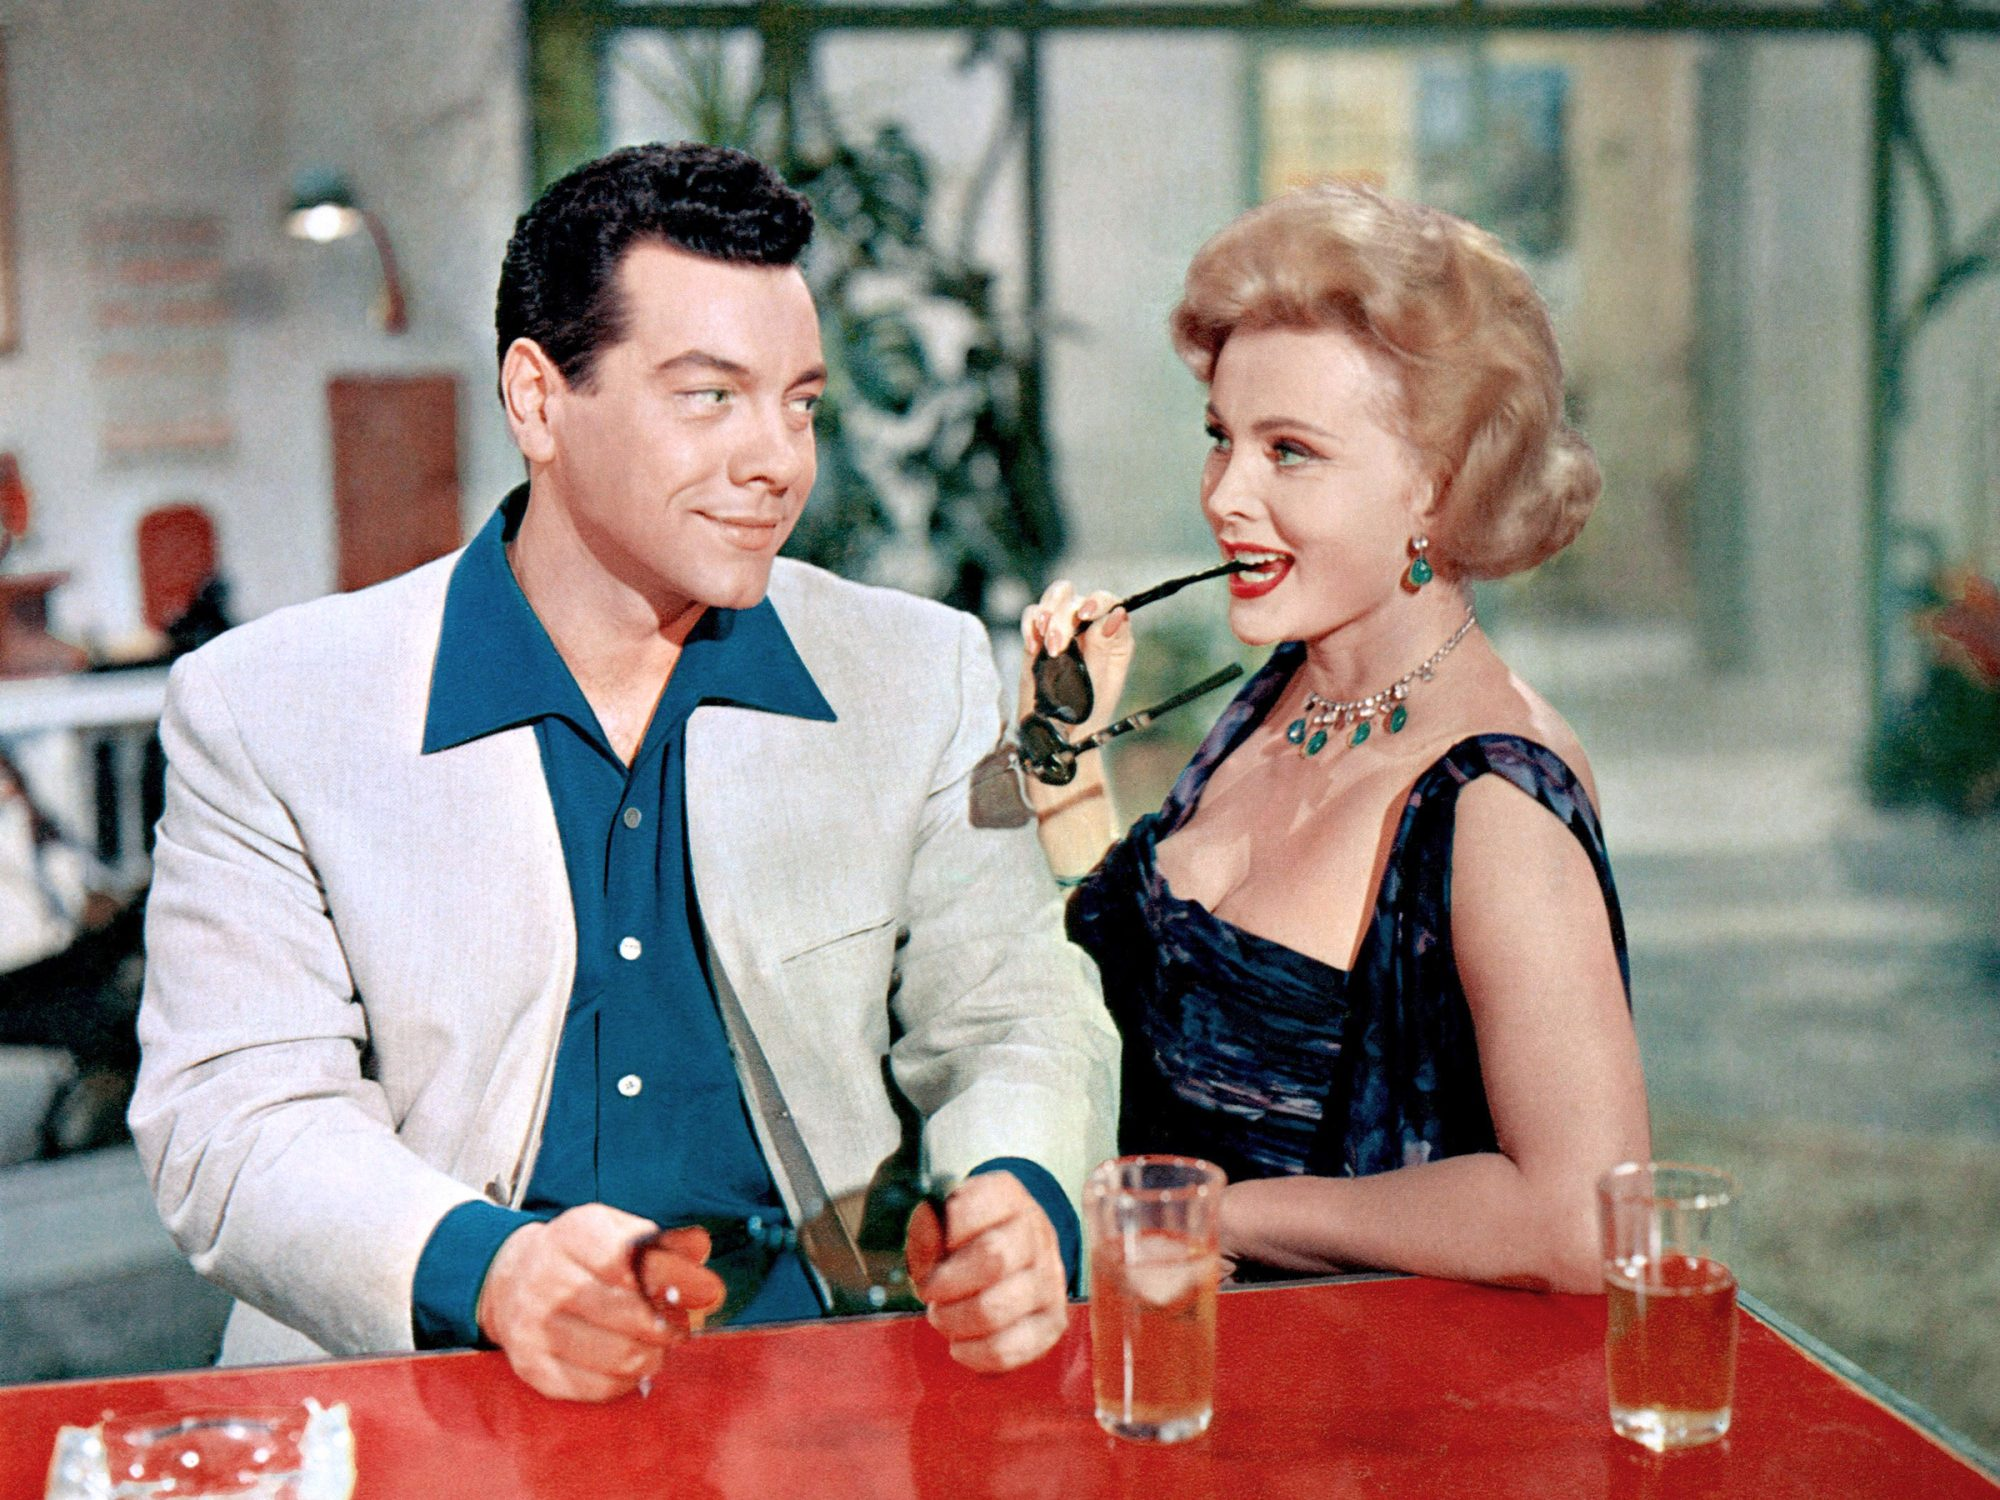 FOR THE FIRST TIME, Mario Lanza, Zsa Zsa Gabor, 1959